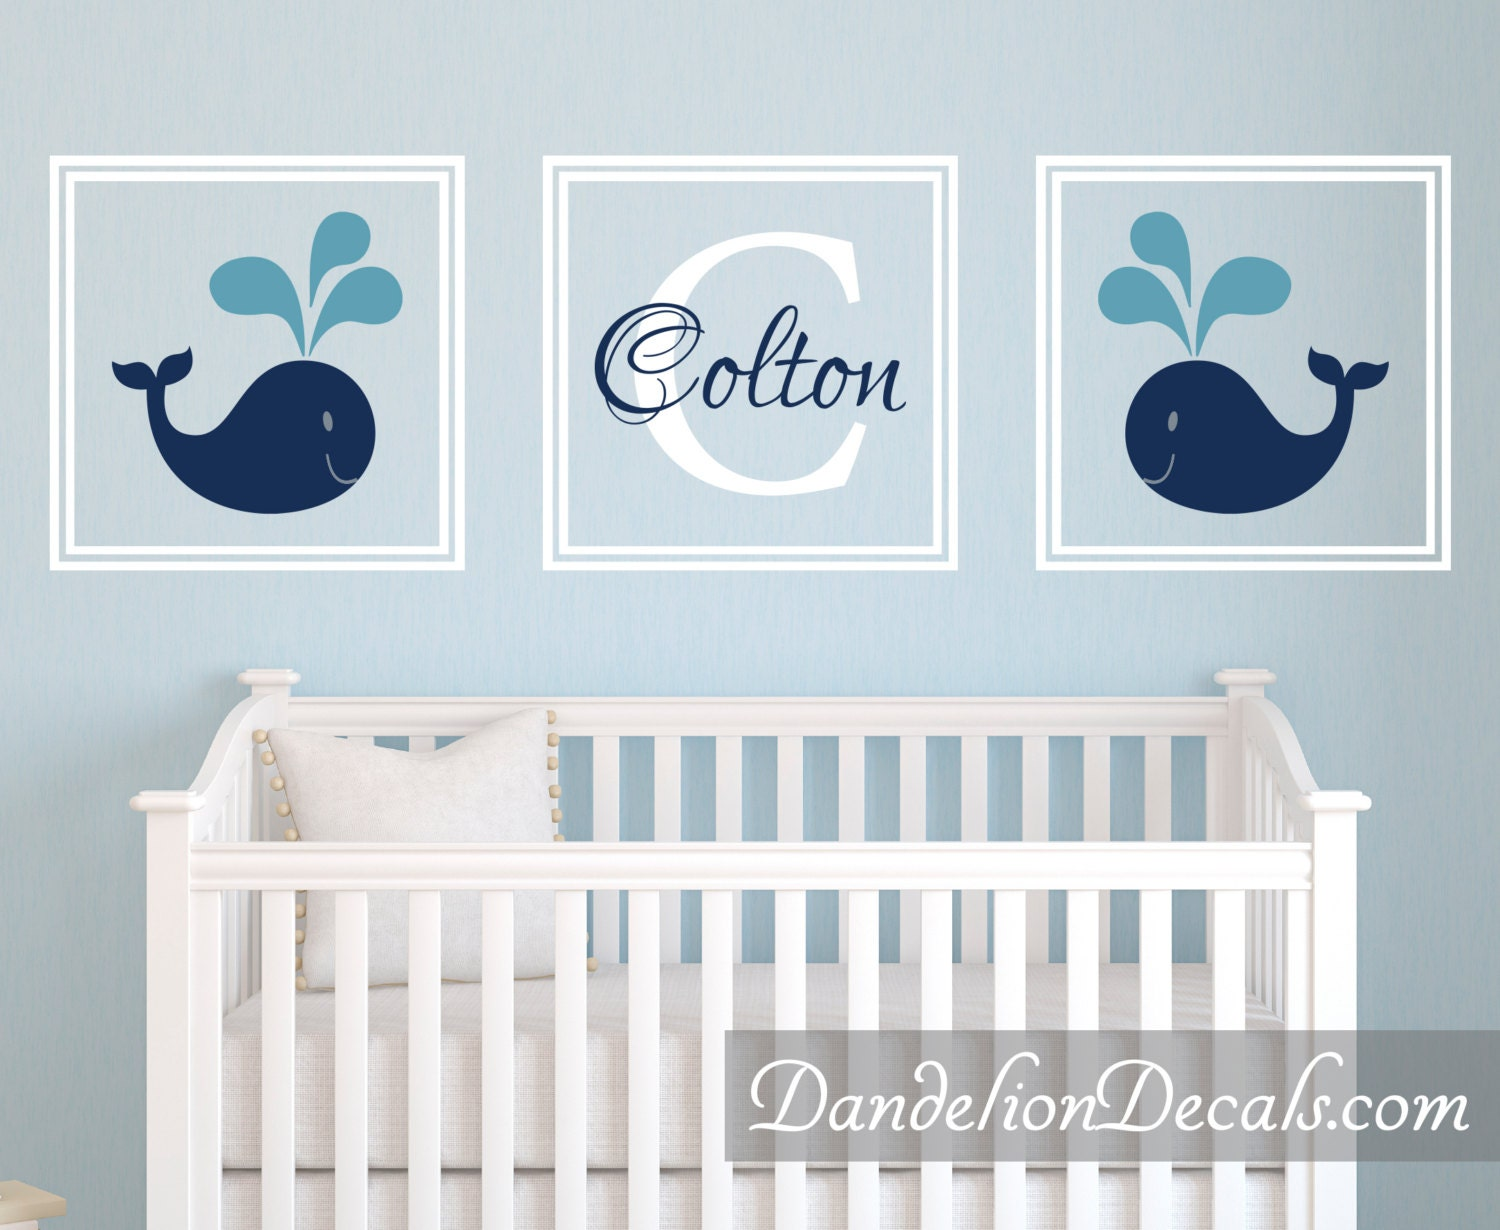 Nursery Wall Decal   Boys Room Decal   Personalized Gifts   Personalized  Wall Decal   Boys Room Decor